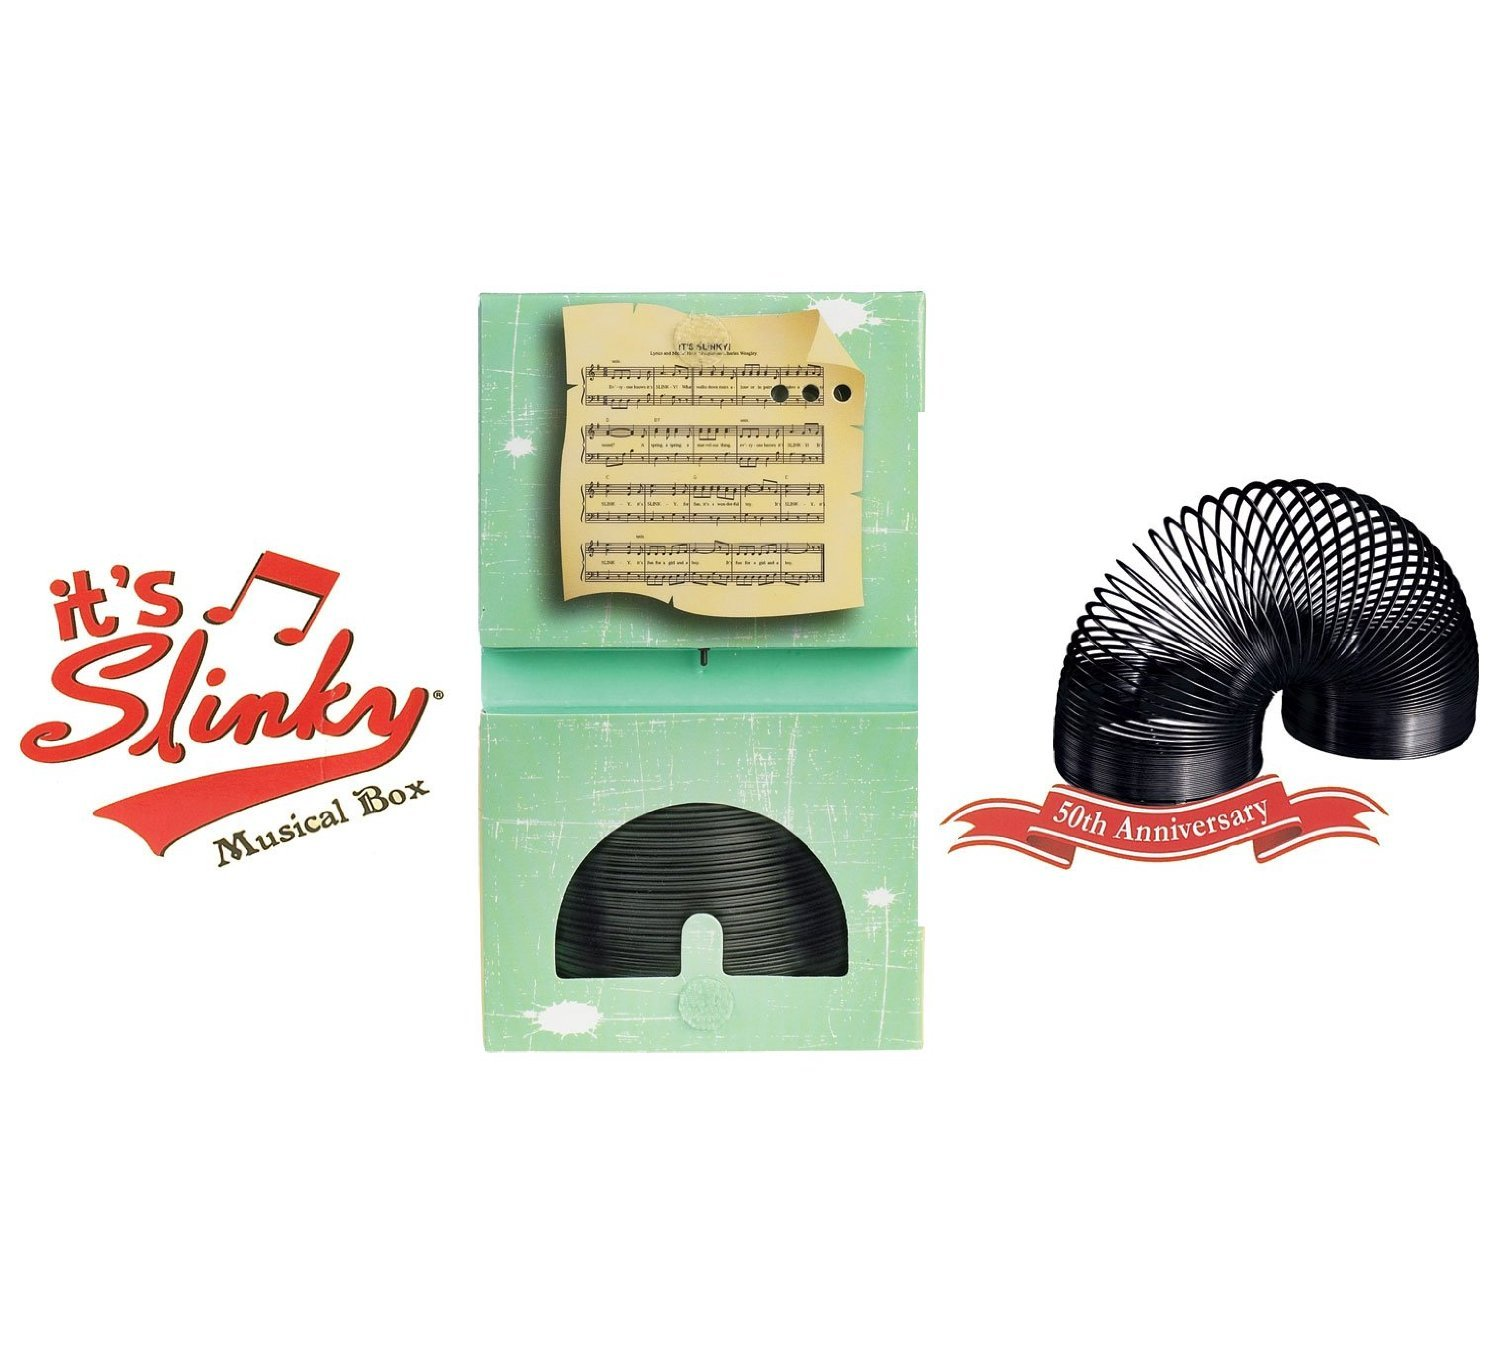 Collector's Edition Original Slinky in Singing Musical Box by Slinky Science (Image #1)